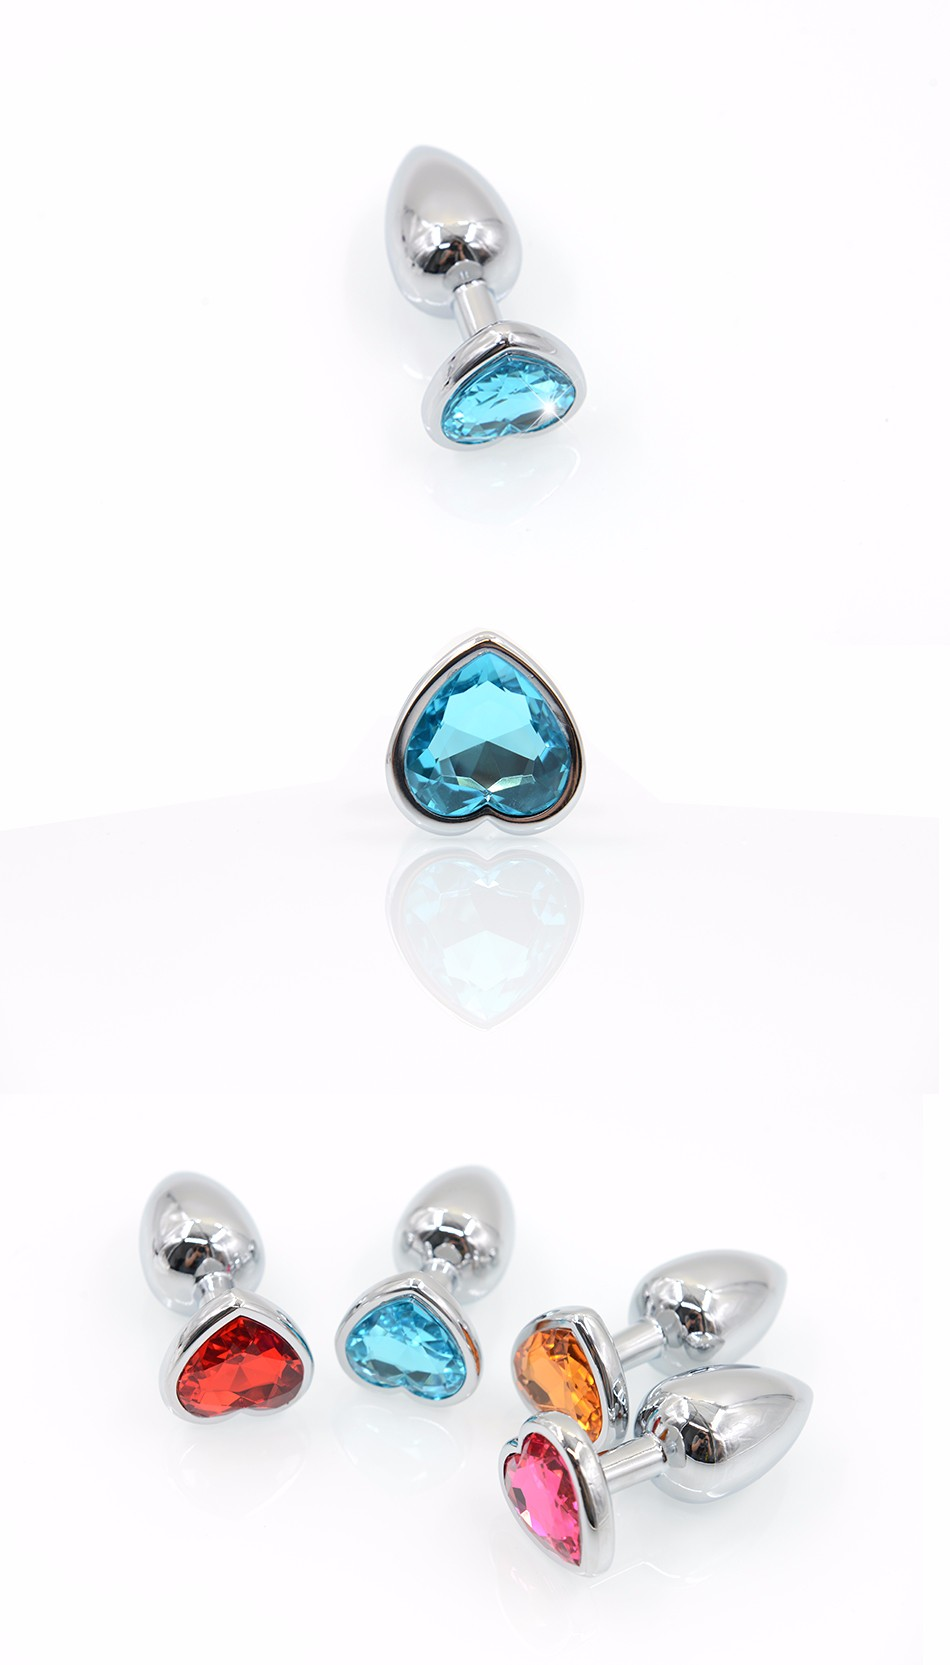 AuReve Hot Sale Smooth Steel Anal Plug Pretty Crystal Heart Shaped Jewelry Metal Butt Plug Sex Toys For Men Women Free Shipping 5